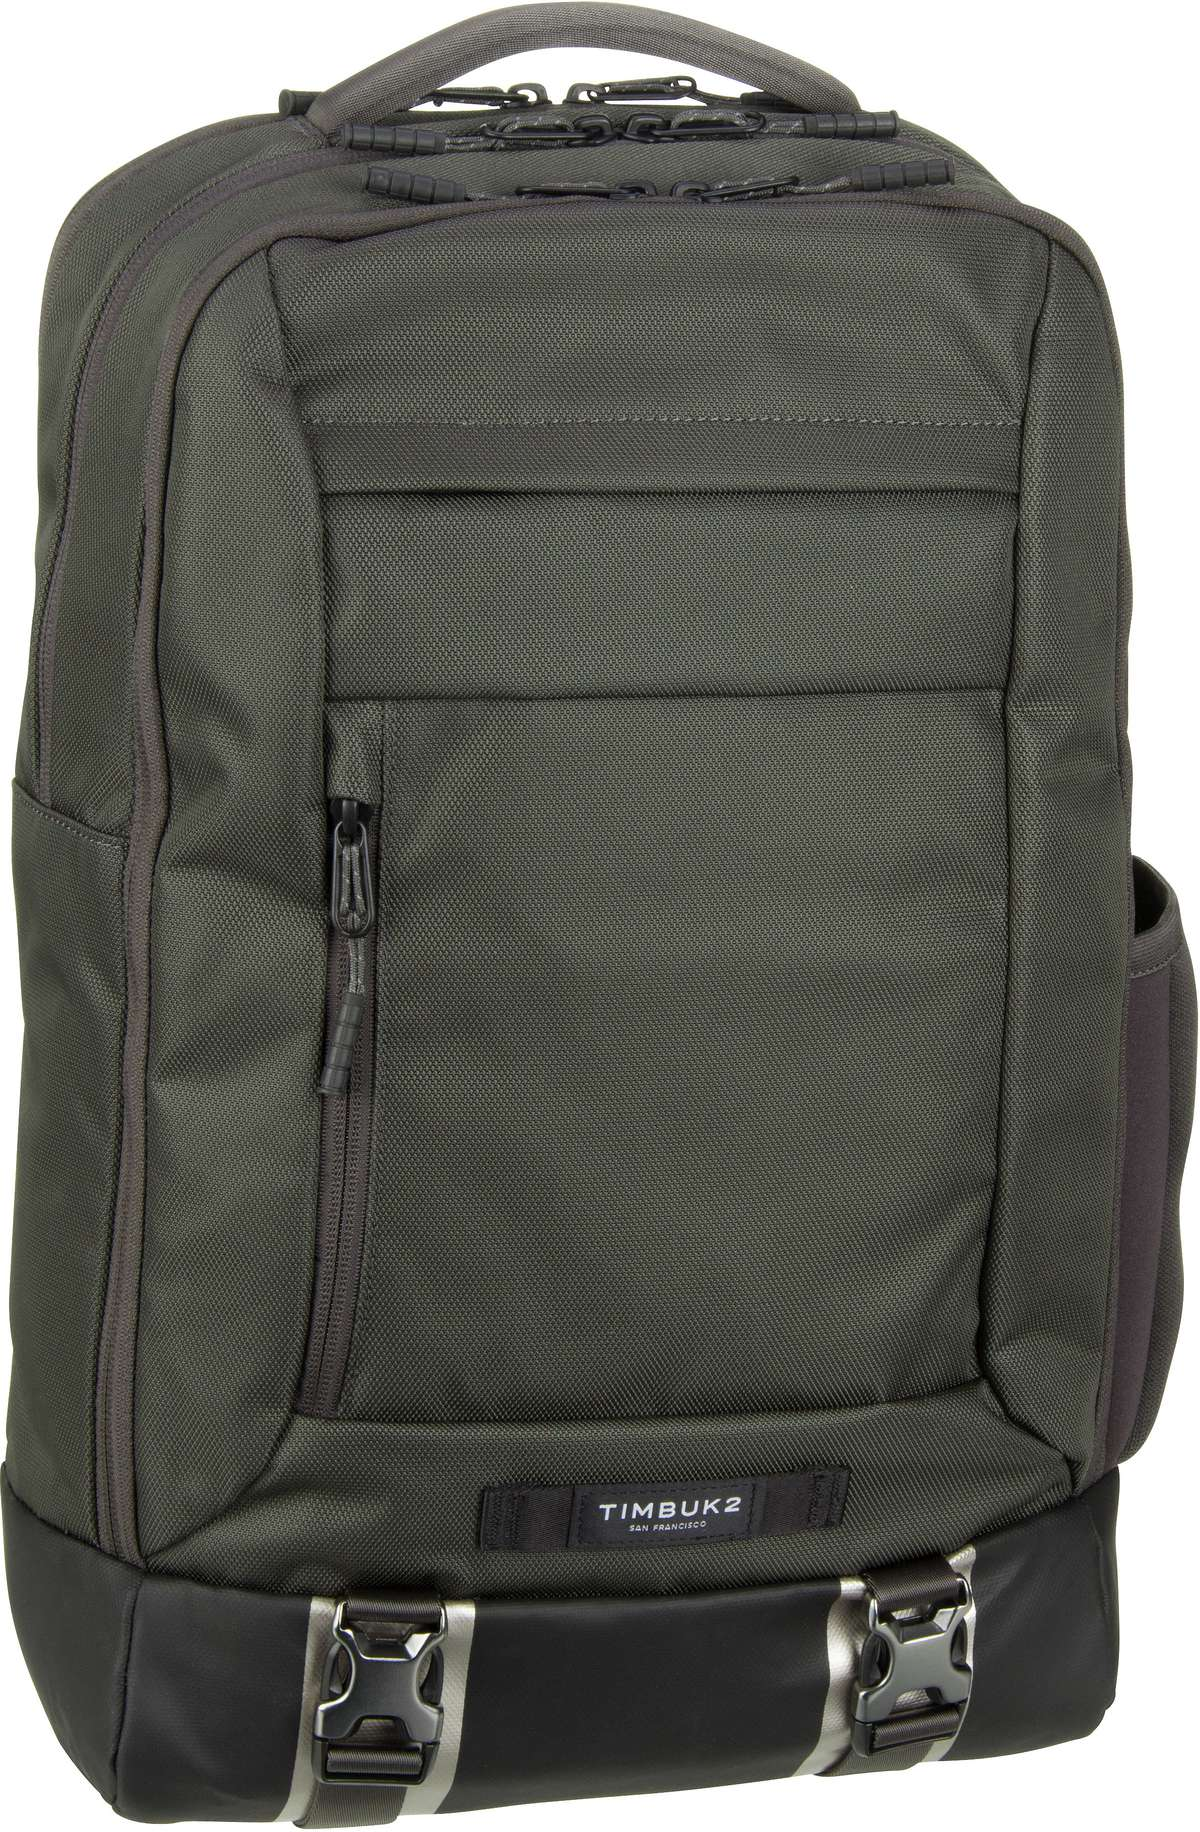 Laptoprucksack The Authority Pack DLX Titanium (28 Liter)